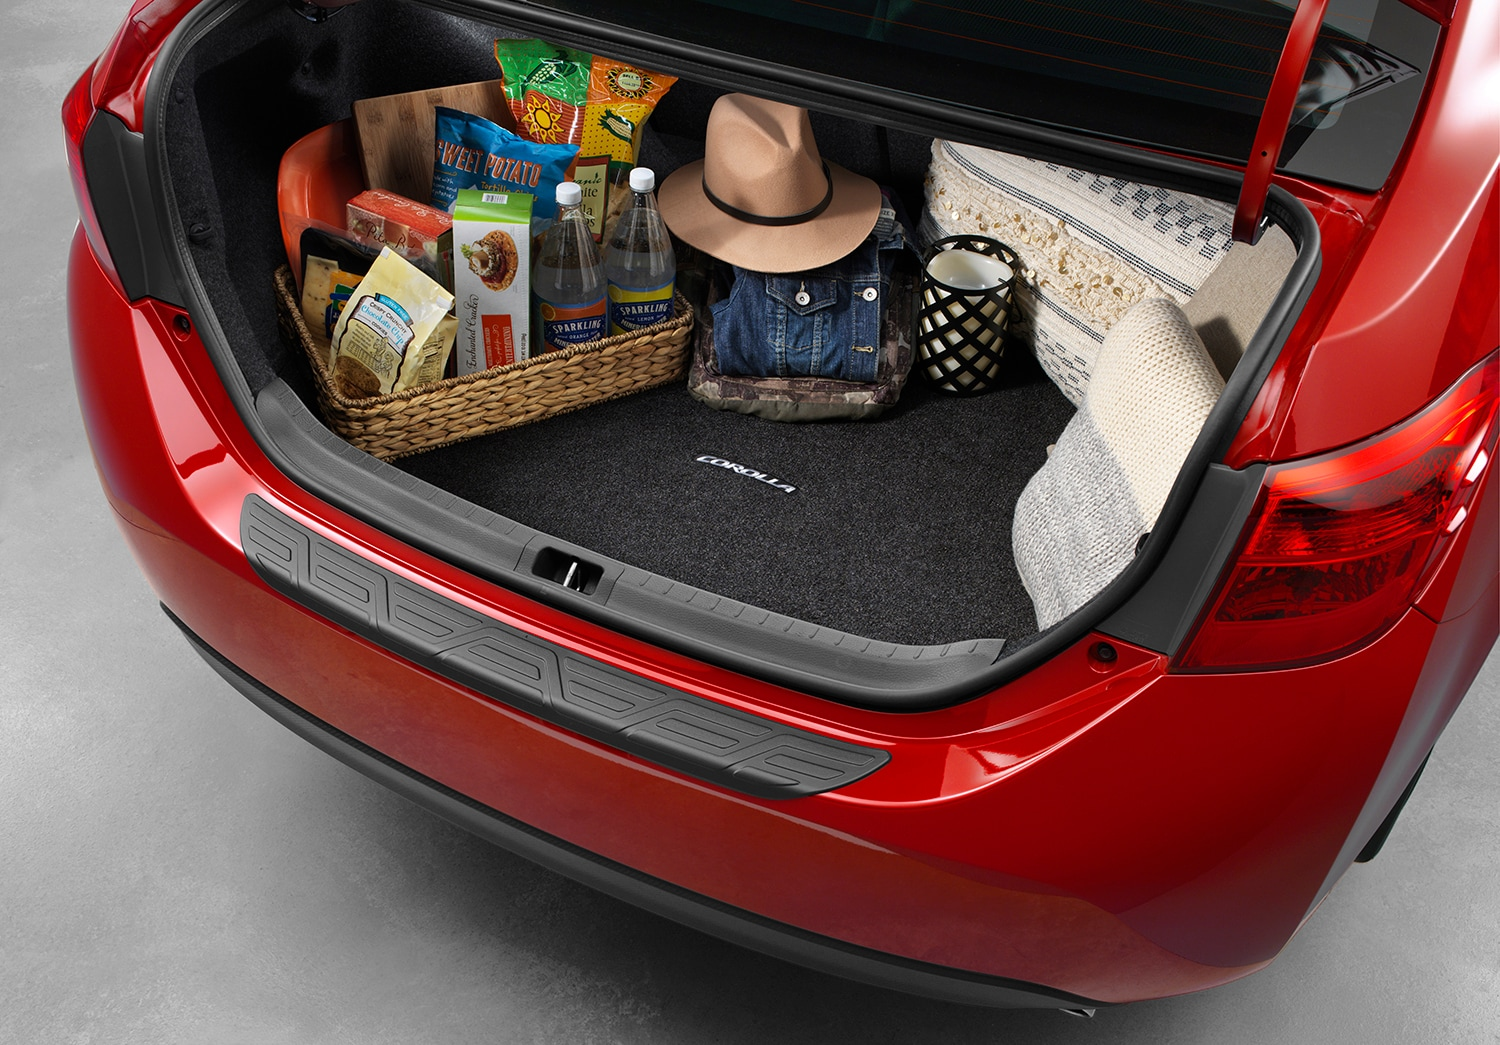 interior view of the corolla's trunk space